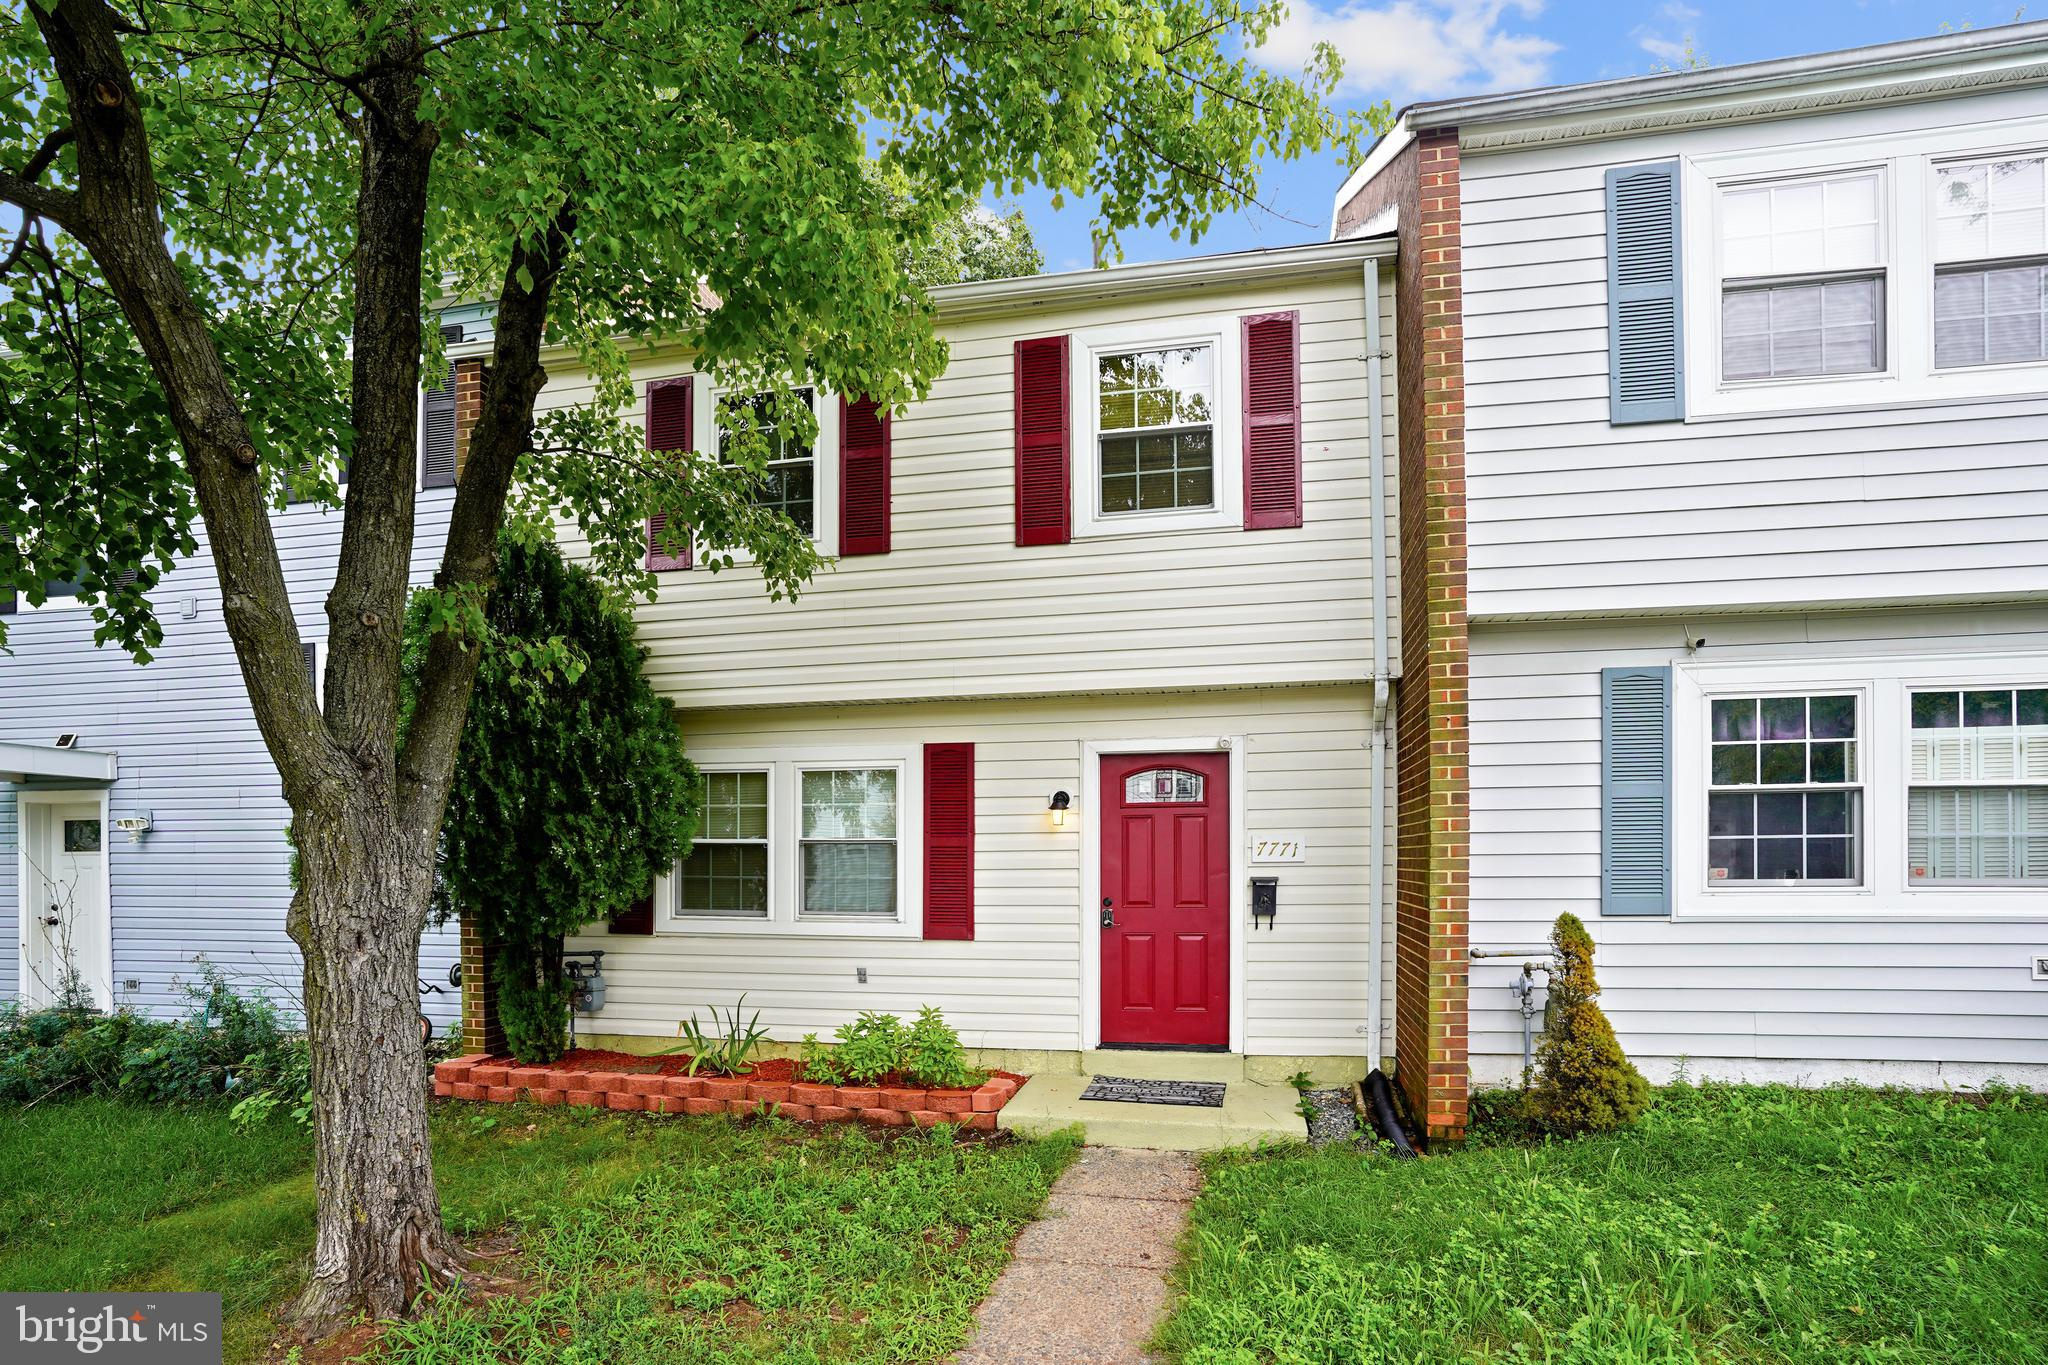 New A/C unit, New Water Heater. Spacious 2-level townhouse in central location to I-66, 234 and Rt 2